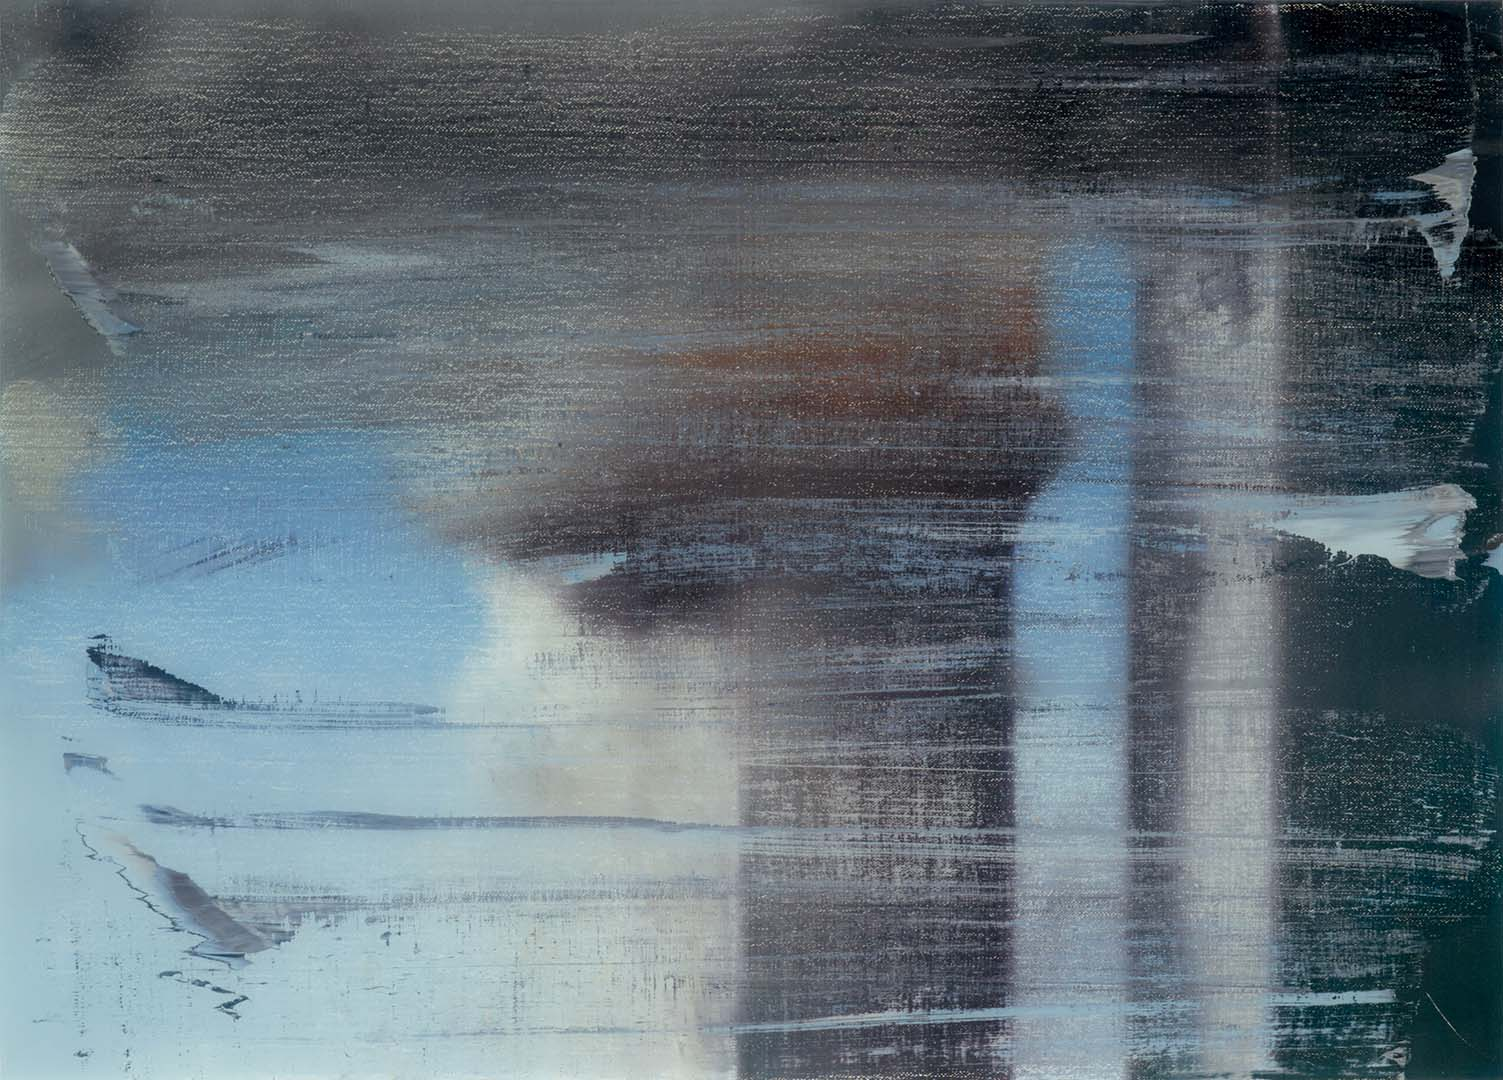 Gerhard Richter,  September , 2009. Print between glass, 66 x 89 cms.